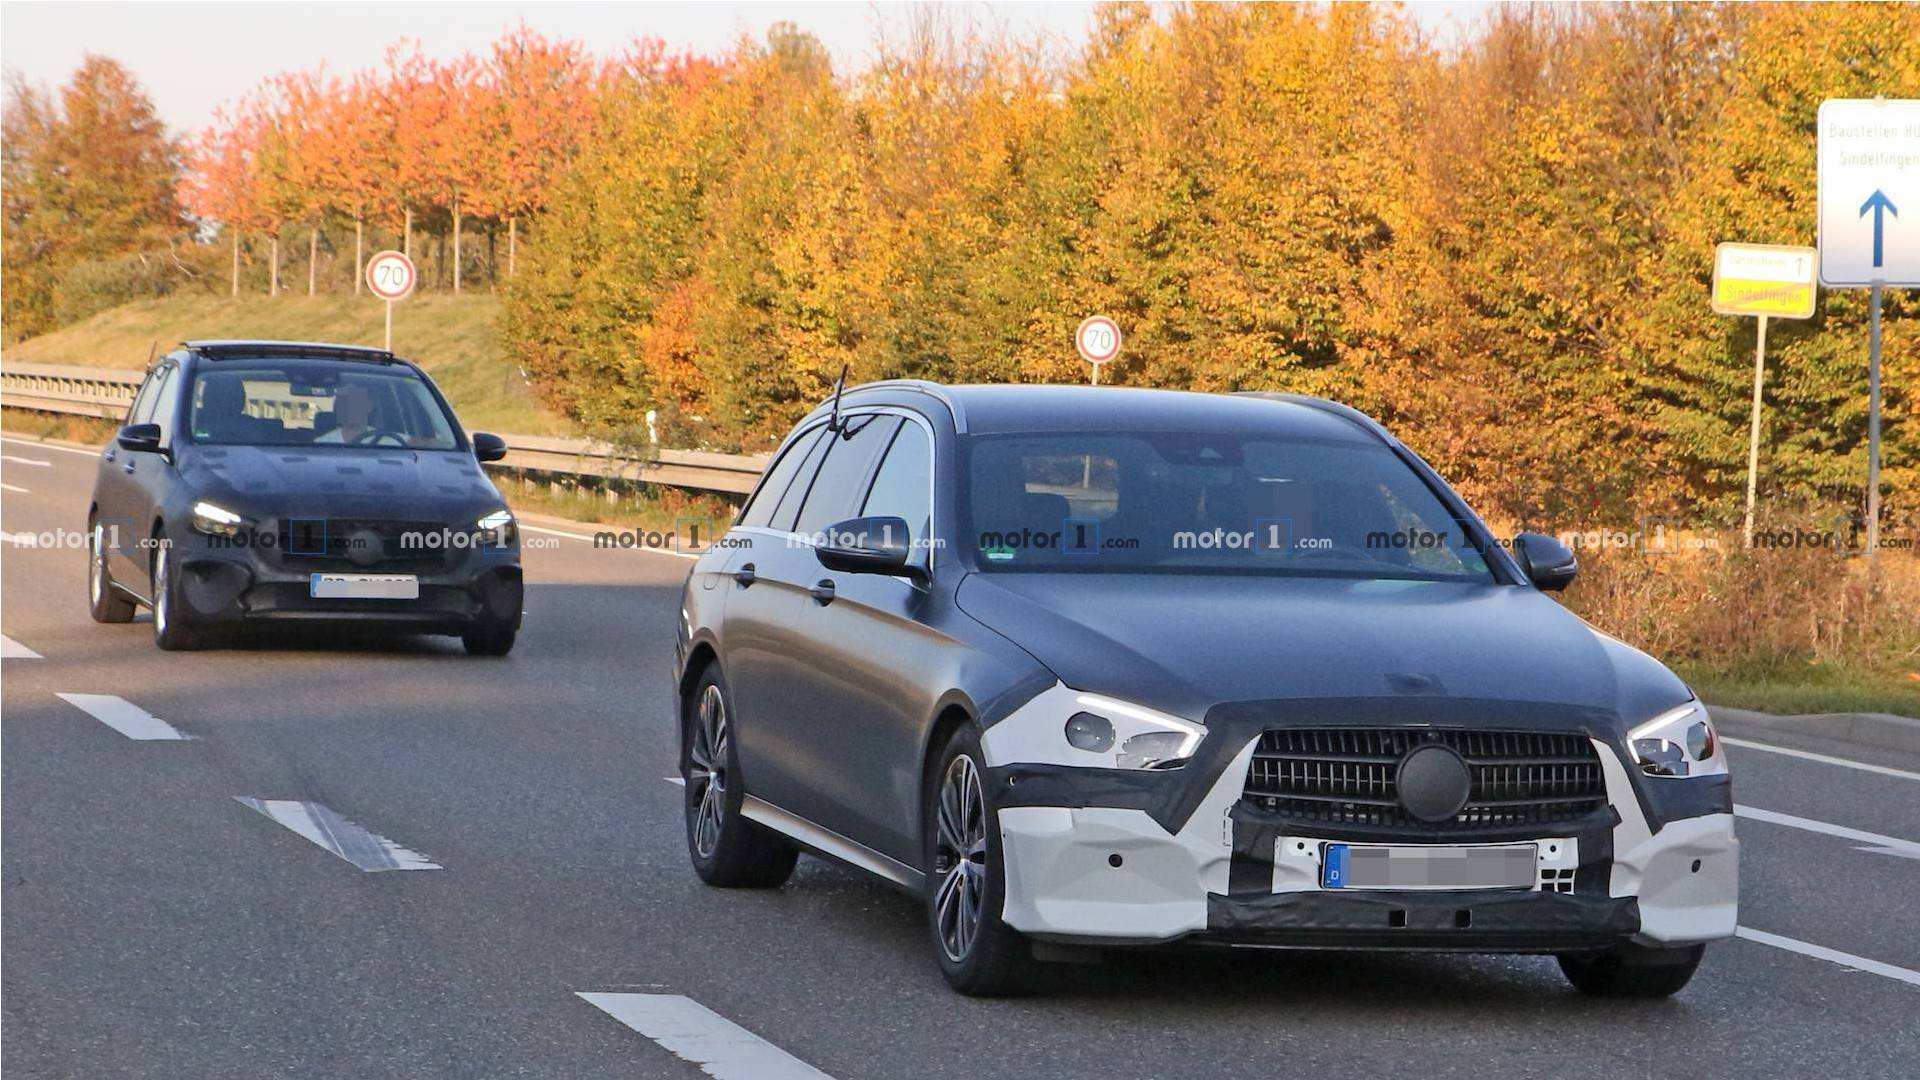 20 New Spy Shots 2020 Mercedes E Class History with Spy Shots 2020 Mercedes E Class